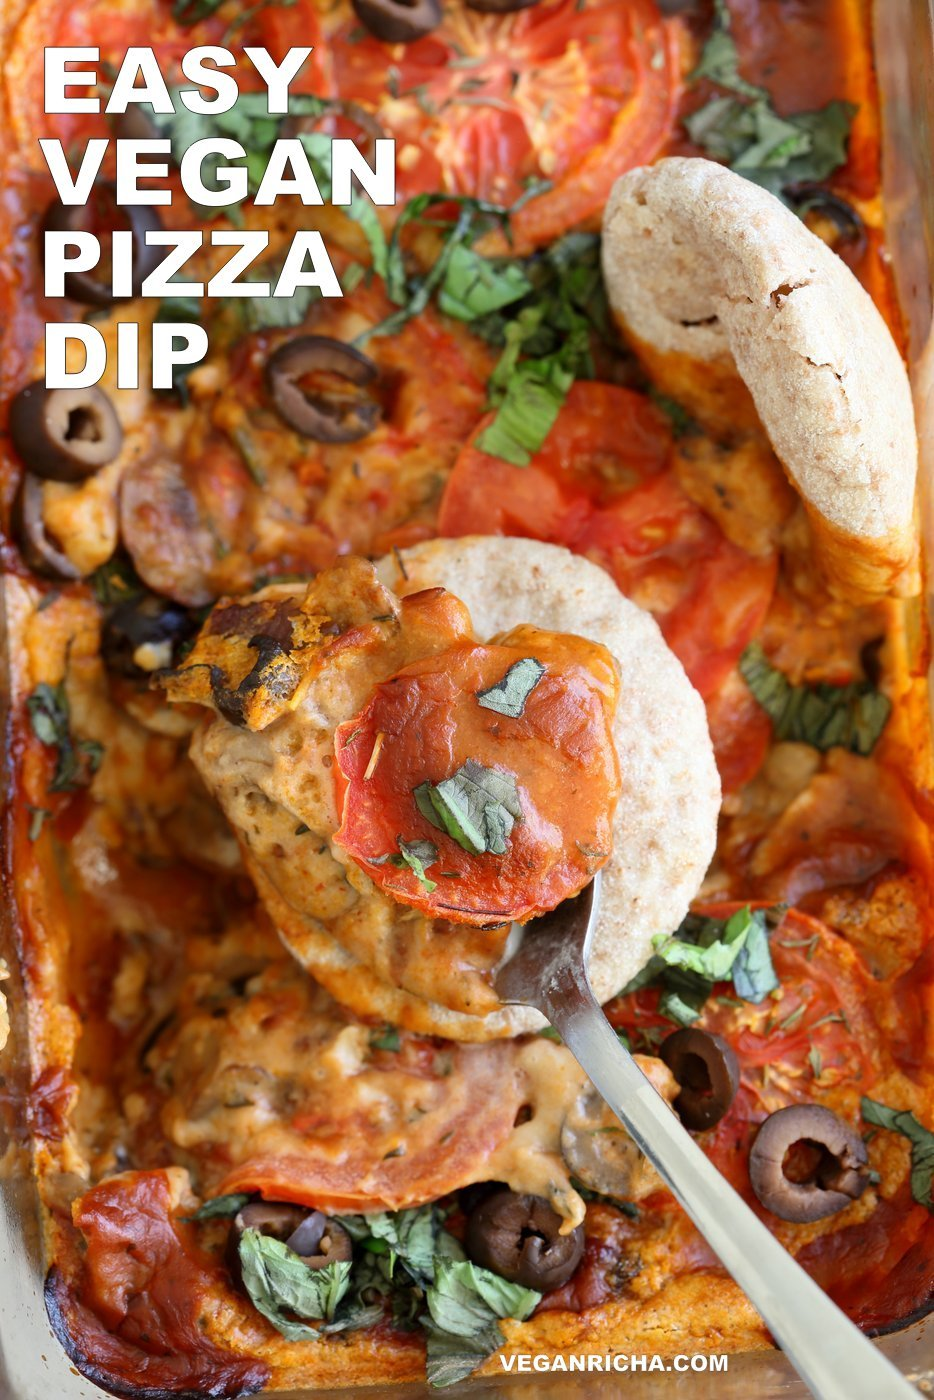 Vegan Pizza Dip. Easy Pizza Dip with sauteed mushrooms, olives, pizza sauce and from scratch Vegan Cashew Mozzarella cream sauce. #Vegan #VeganRicha #Glutenfree #Recipe. Can be #soyfree | VeganRicha.com